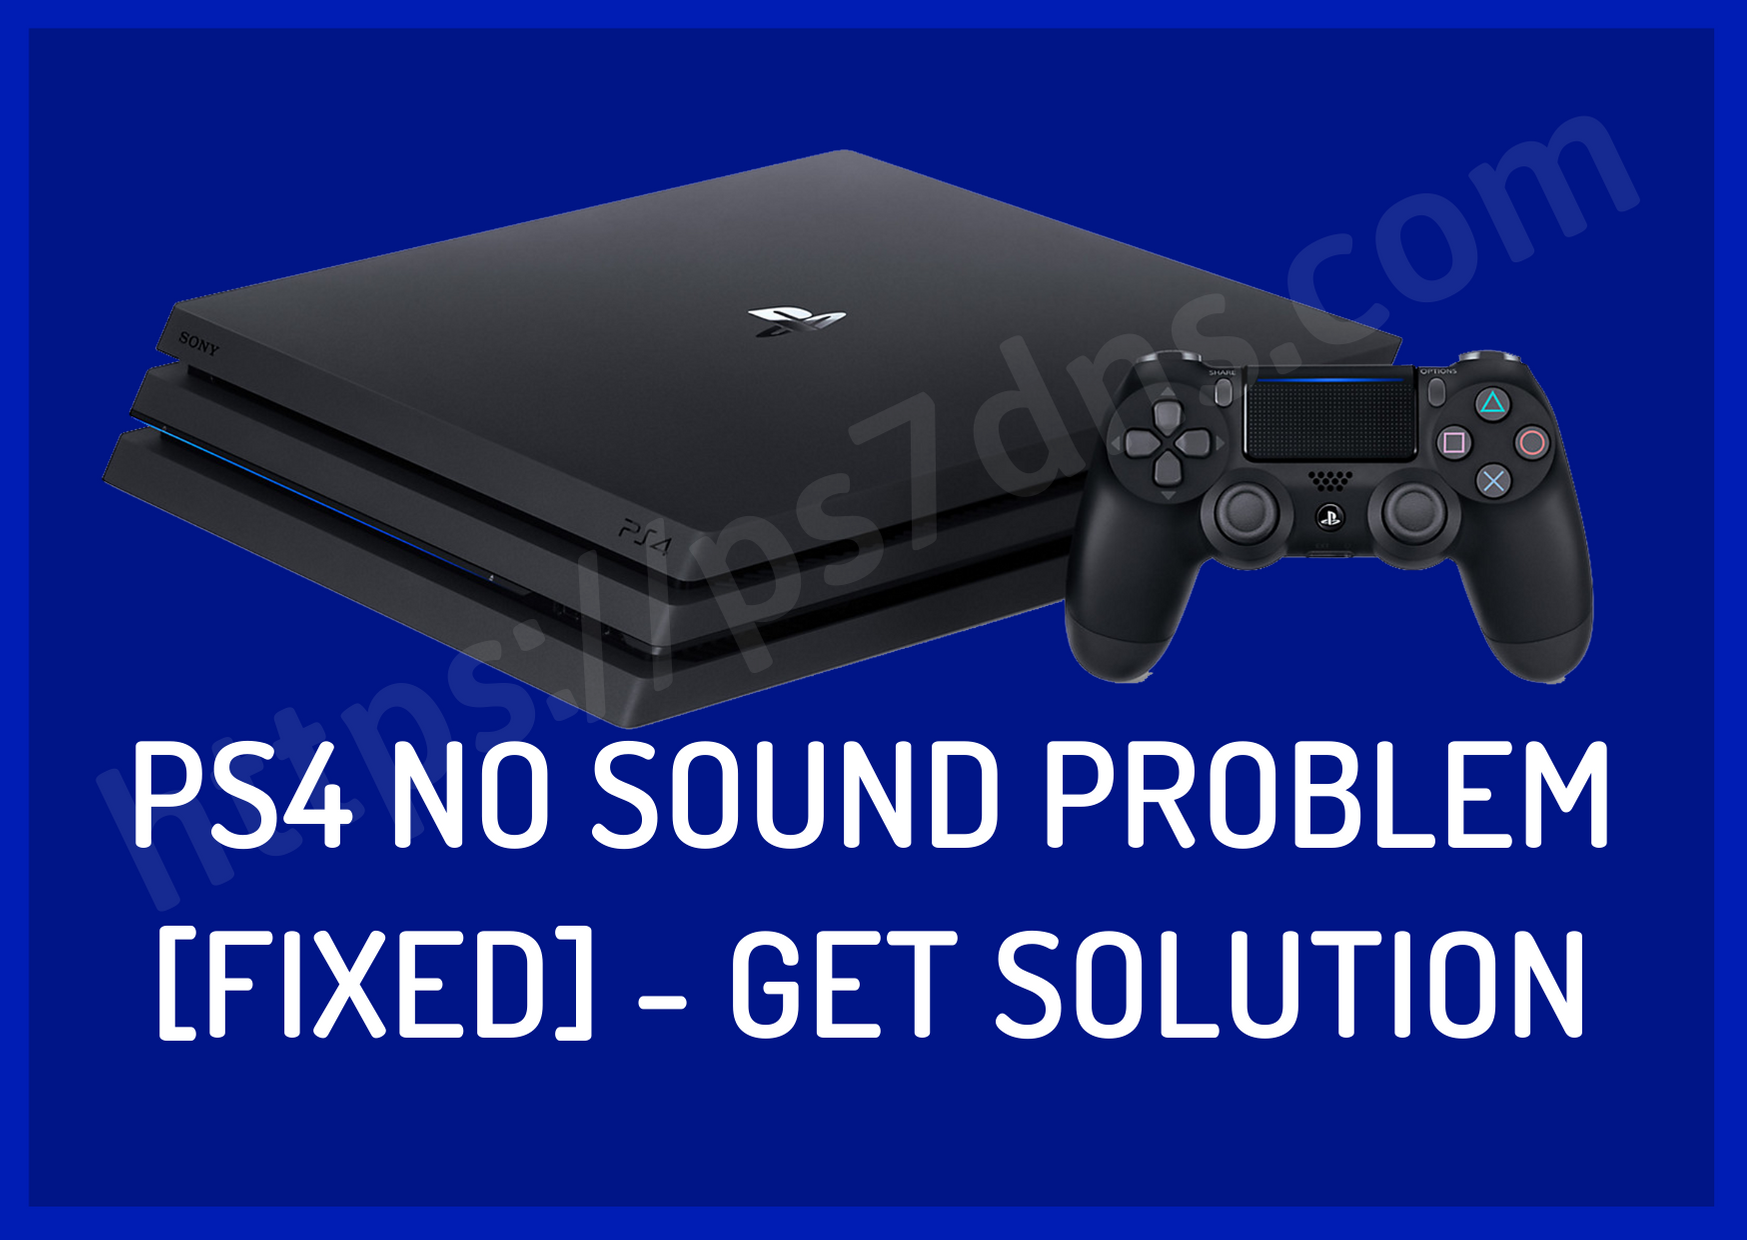 PS4 No Sound Problem [Fixed] - Get Solution